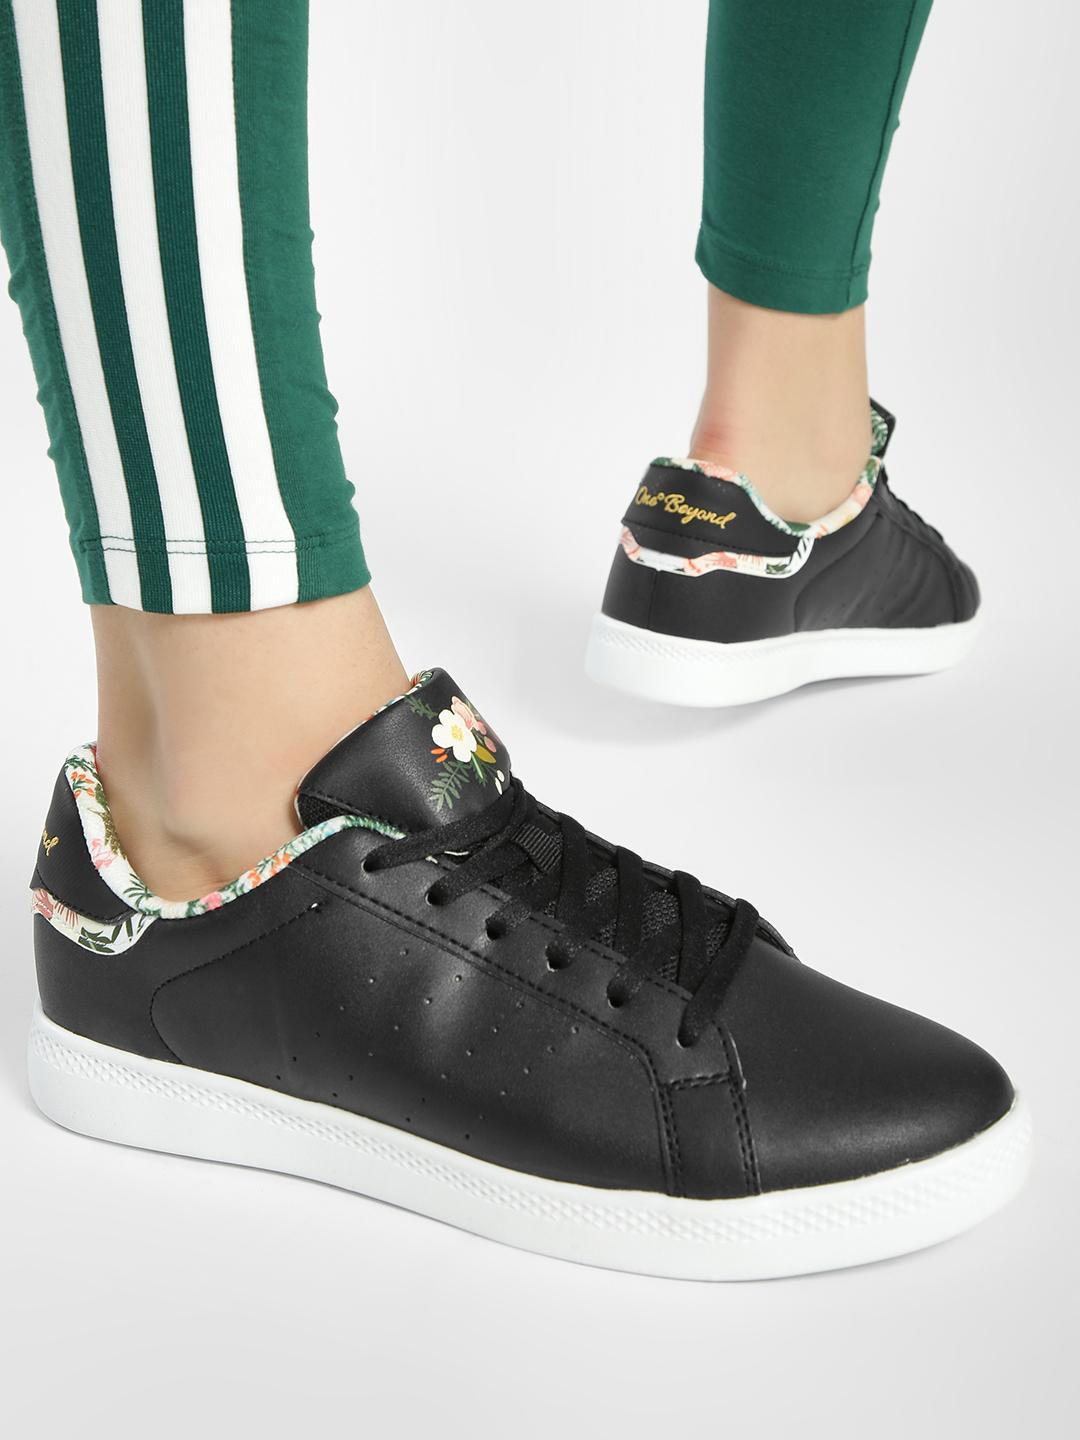 361 Degree Black Floral Printed Piping Sneakers 1